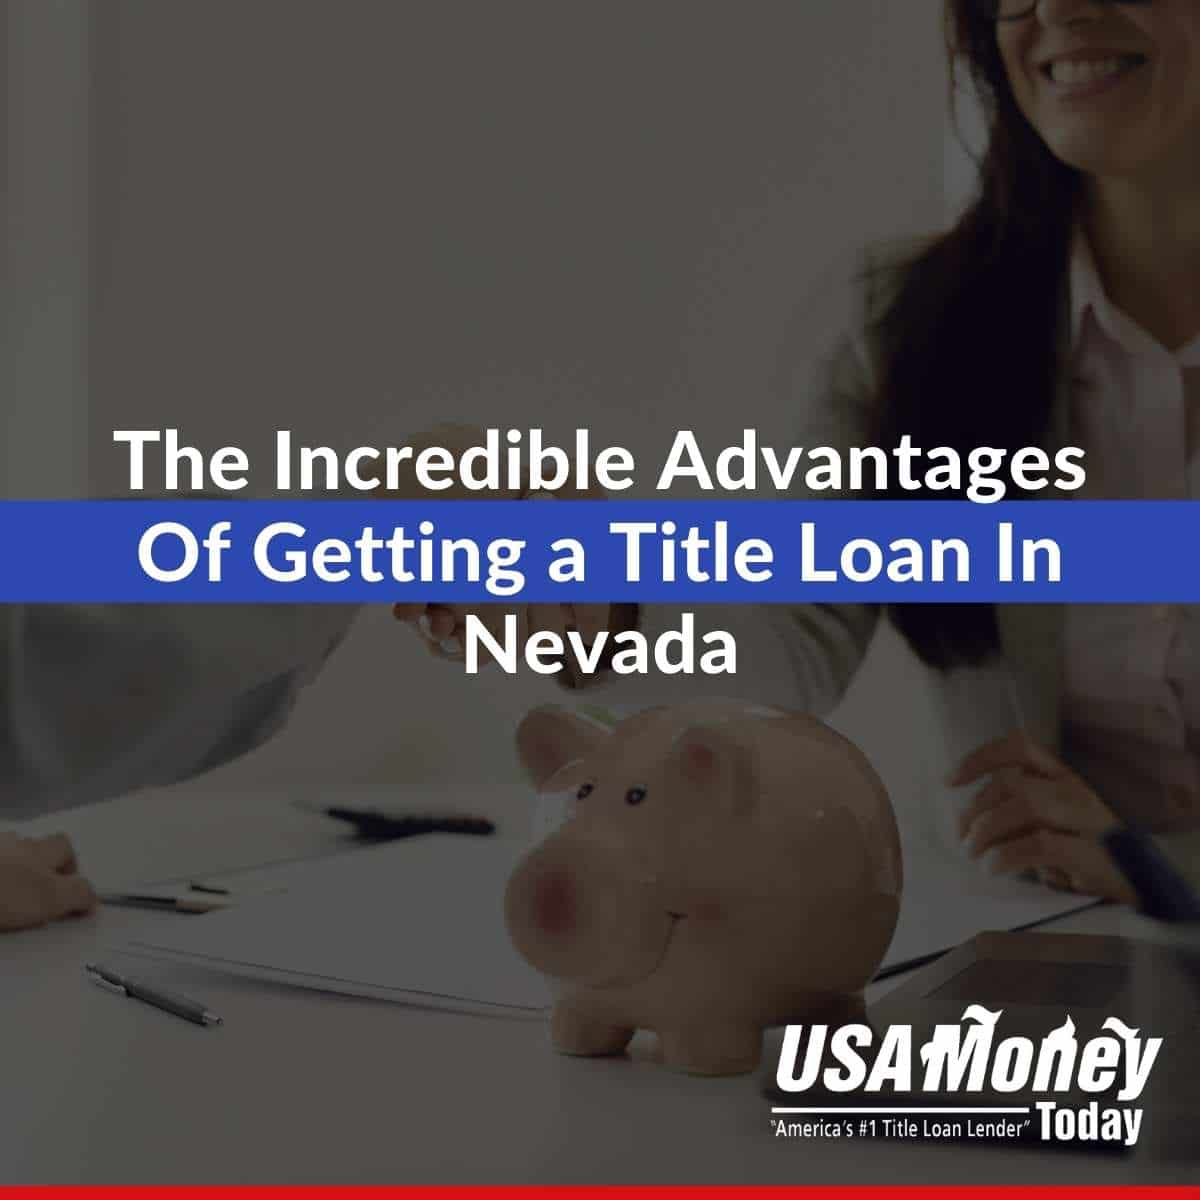 The Incredible Advantages Of Getting a Title Loan In Nevada